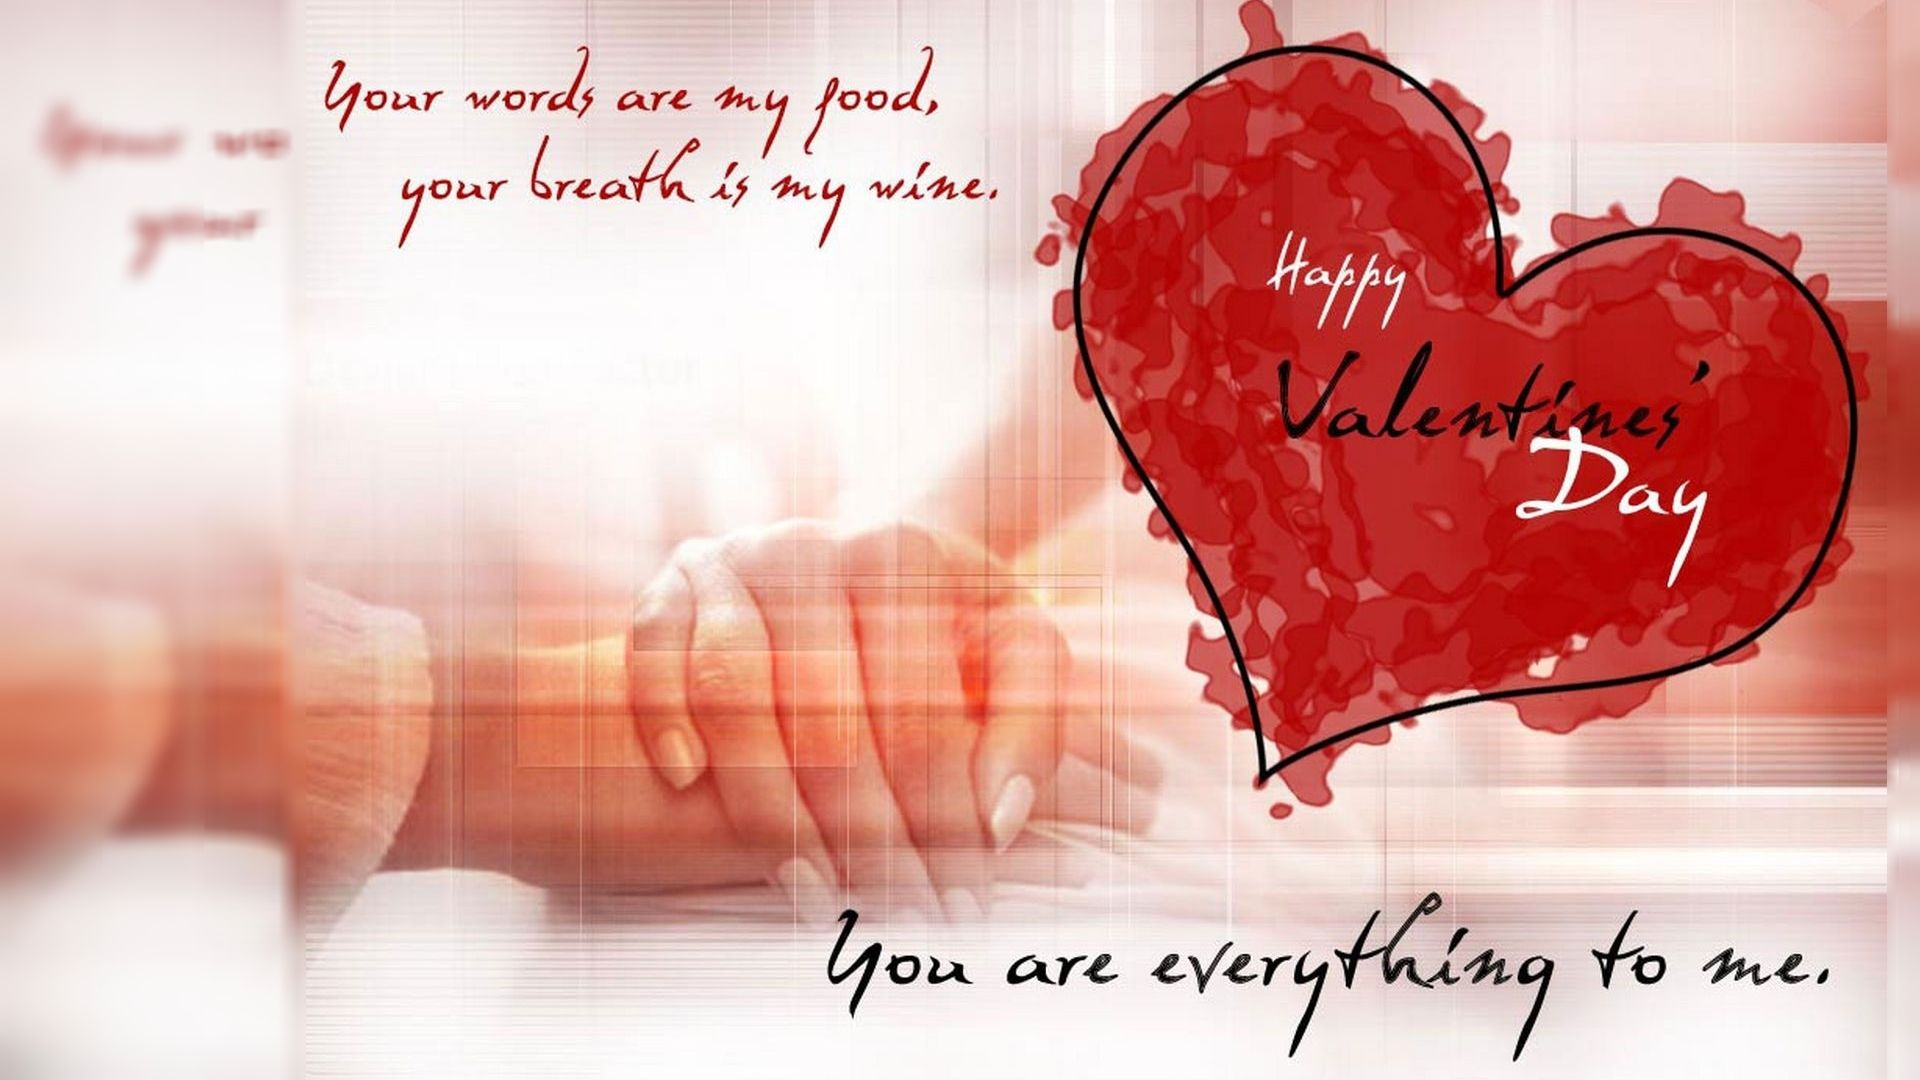 Schön Happy Valentineu0027s Day Check Out More Exciting HD Wallpapers, Covers, And  DPs For Social